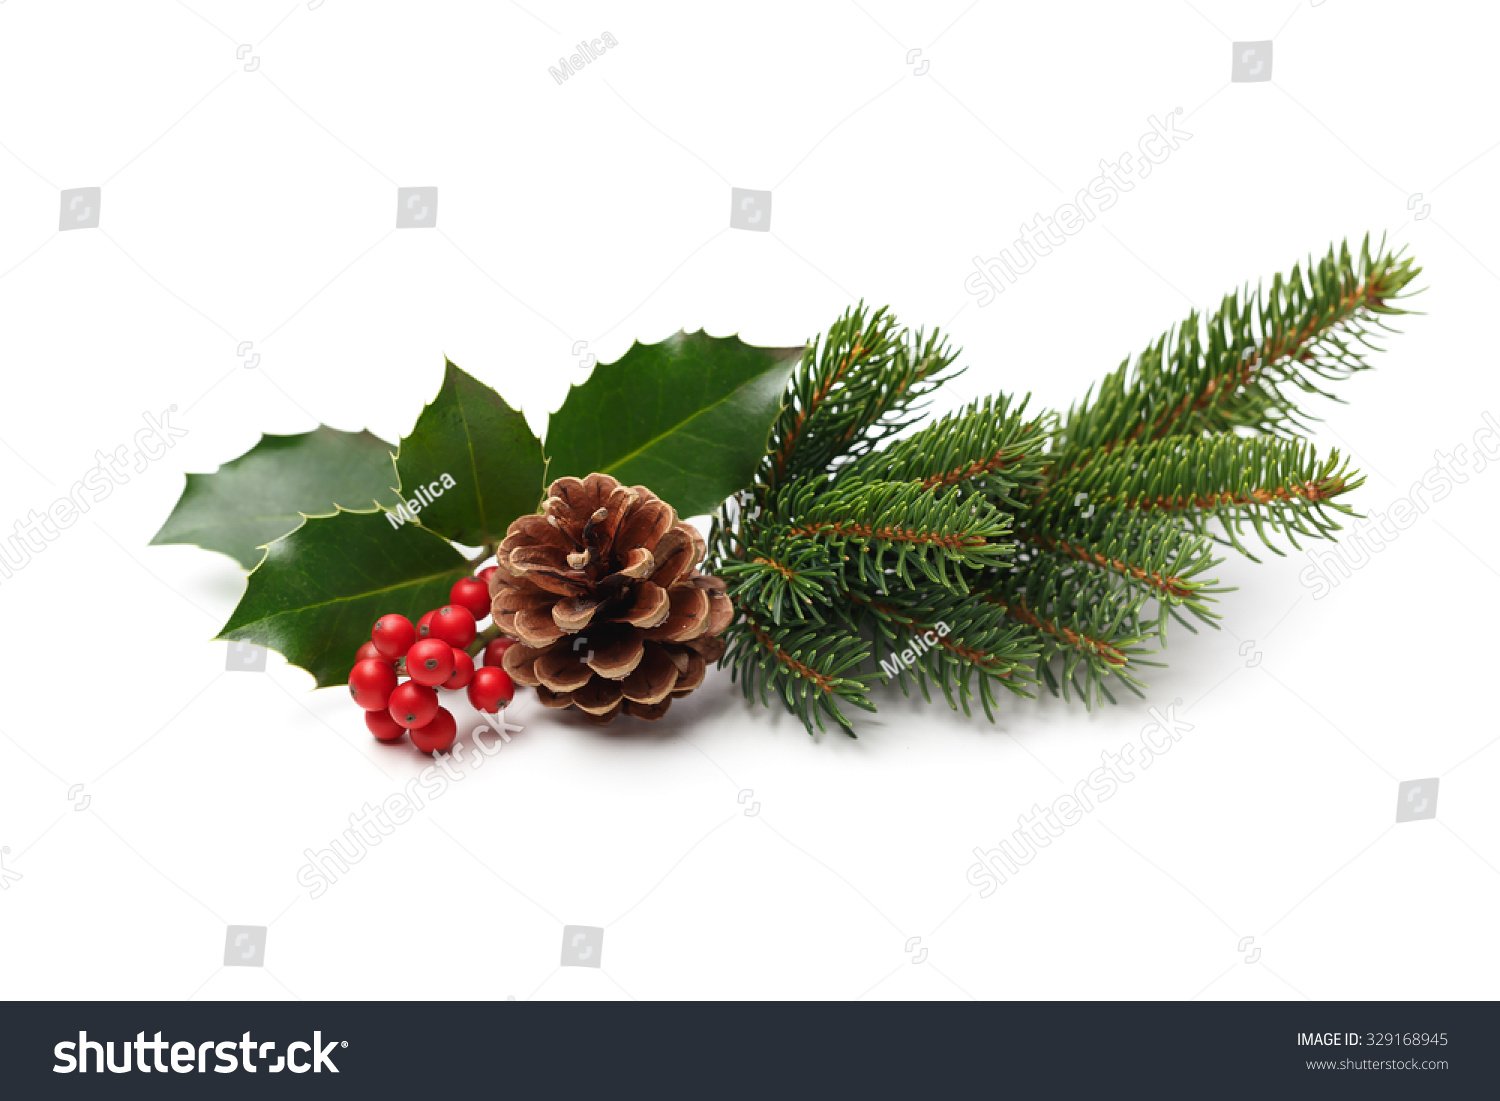 Christmas Tree With Berries And Pine Cones